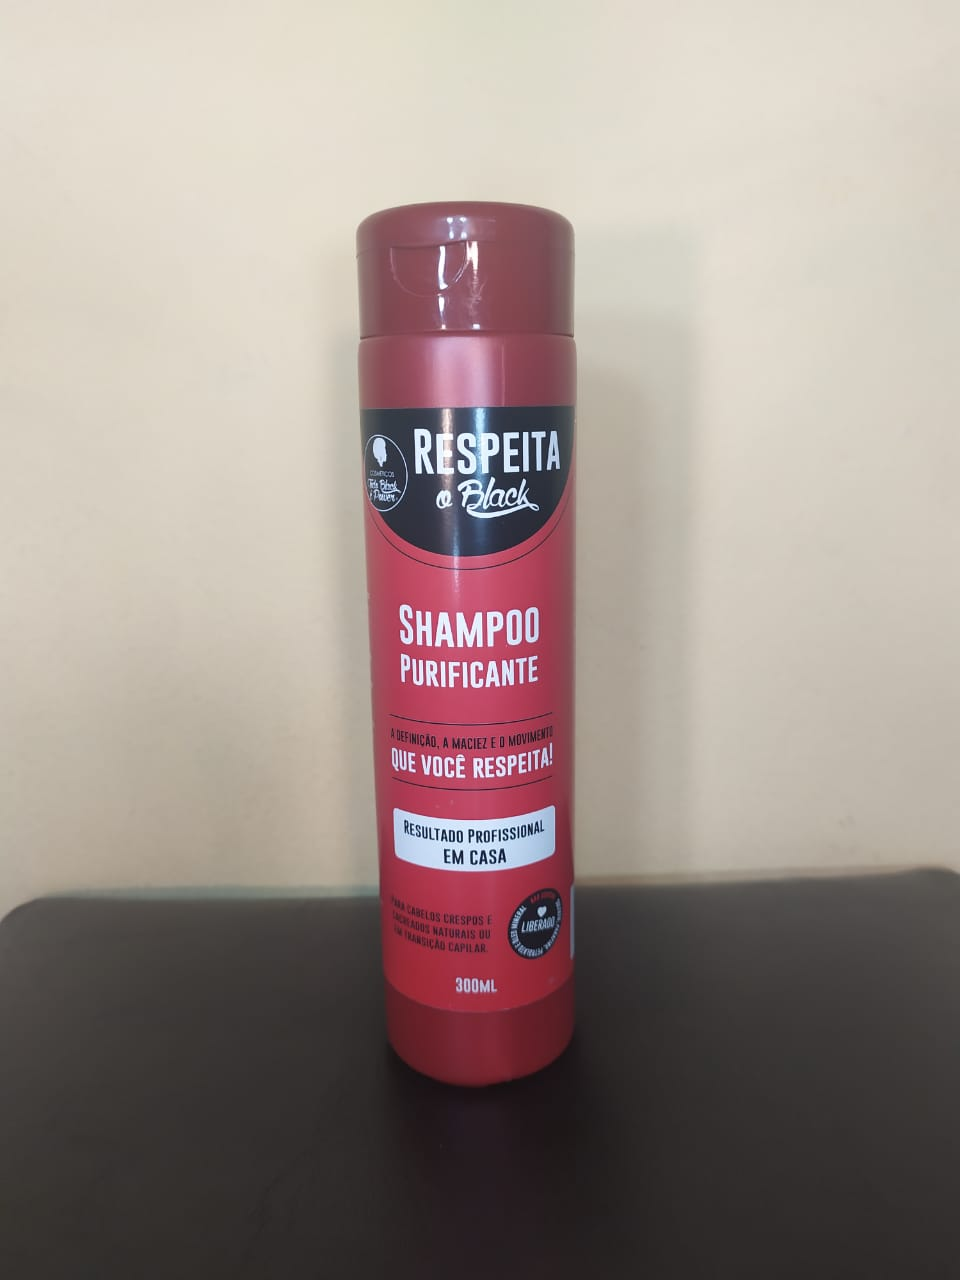 SHAMPOO PURIFICANTE 300ML